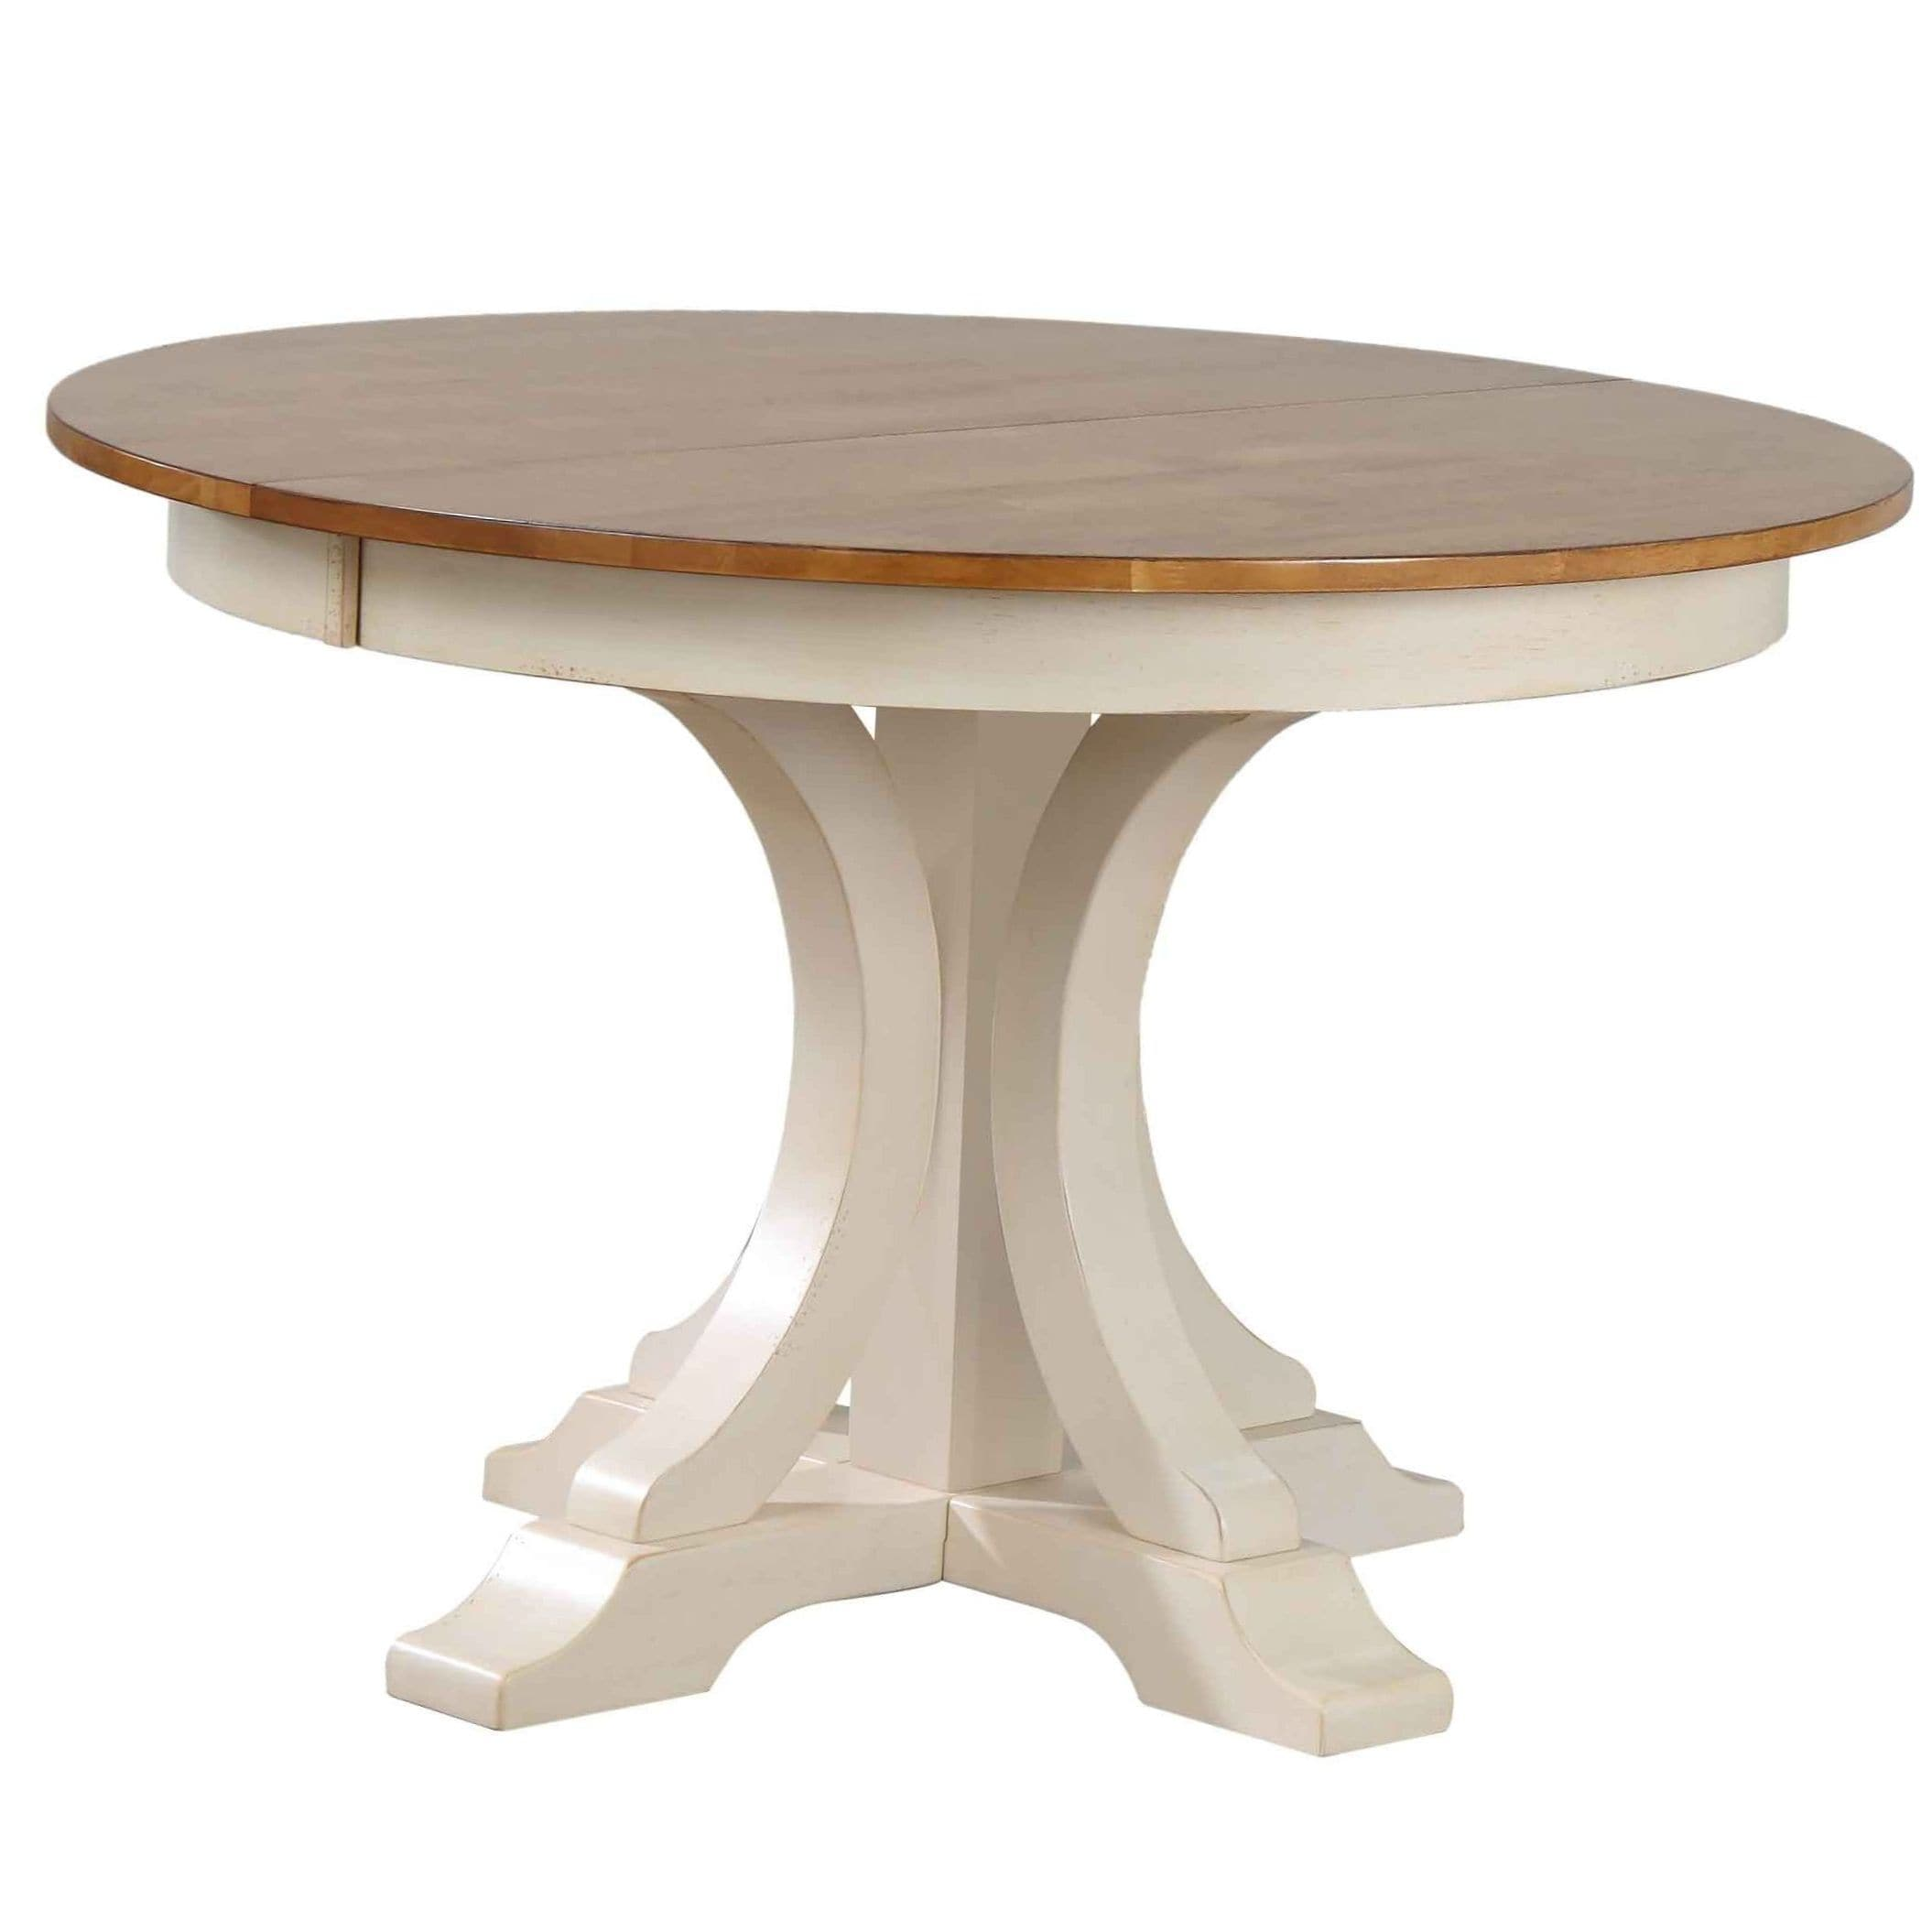 Iconic Furniture Company Caramel Biscotti Round Art Deco Inspired Dining Table